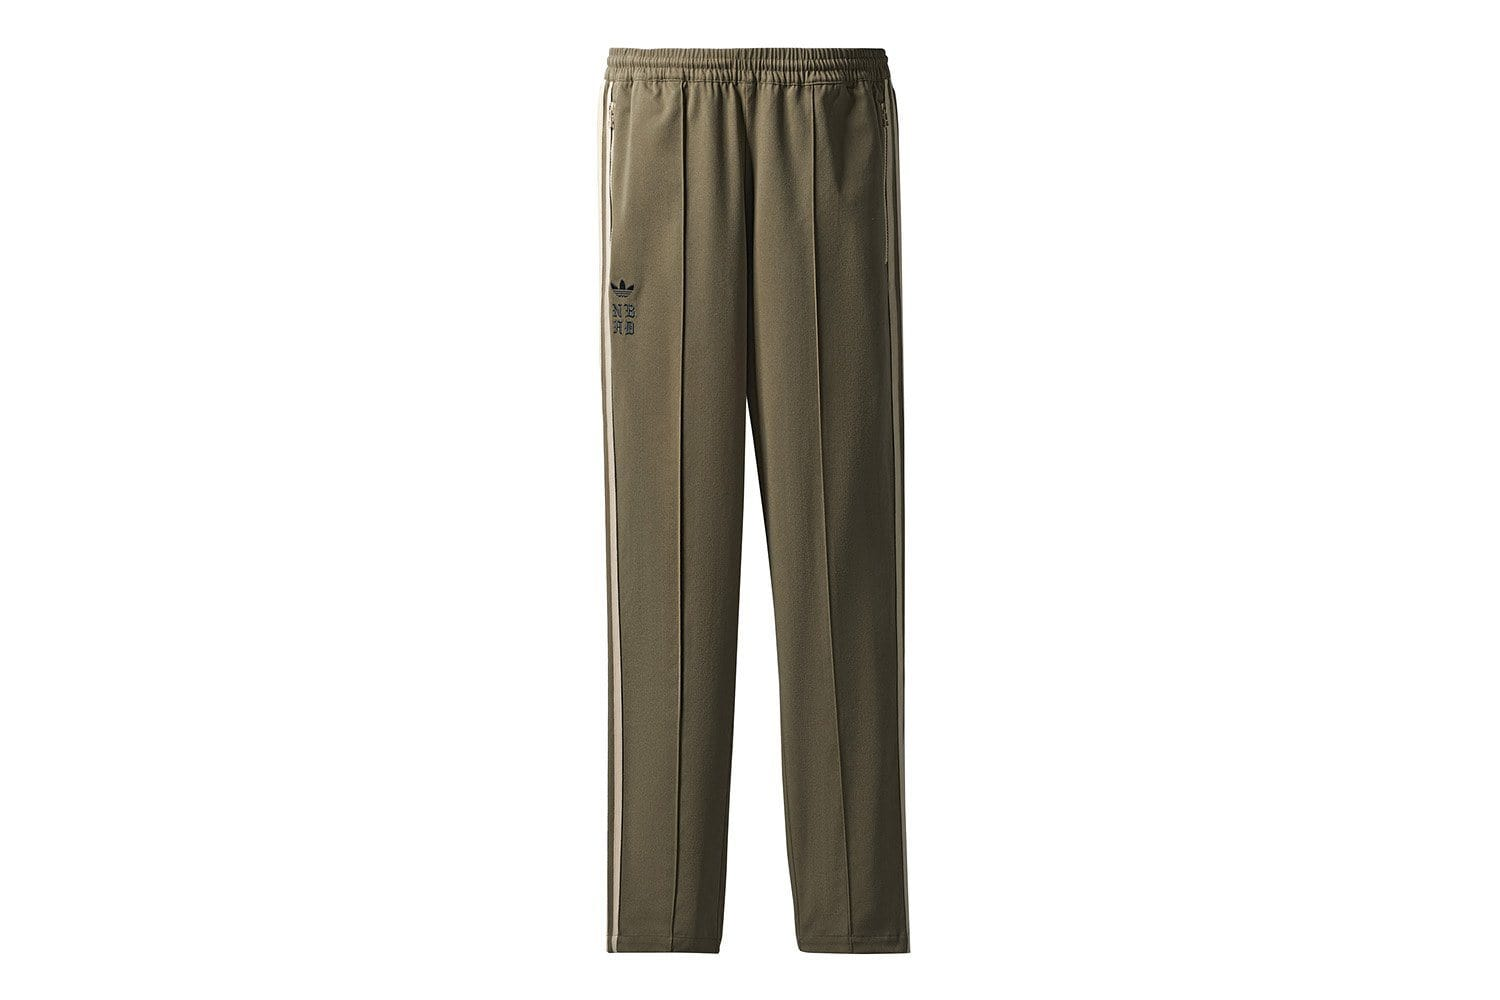 NH TRACK PANTS-DH2044 MENS SOFTGOODS ADIDAS